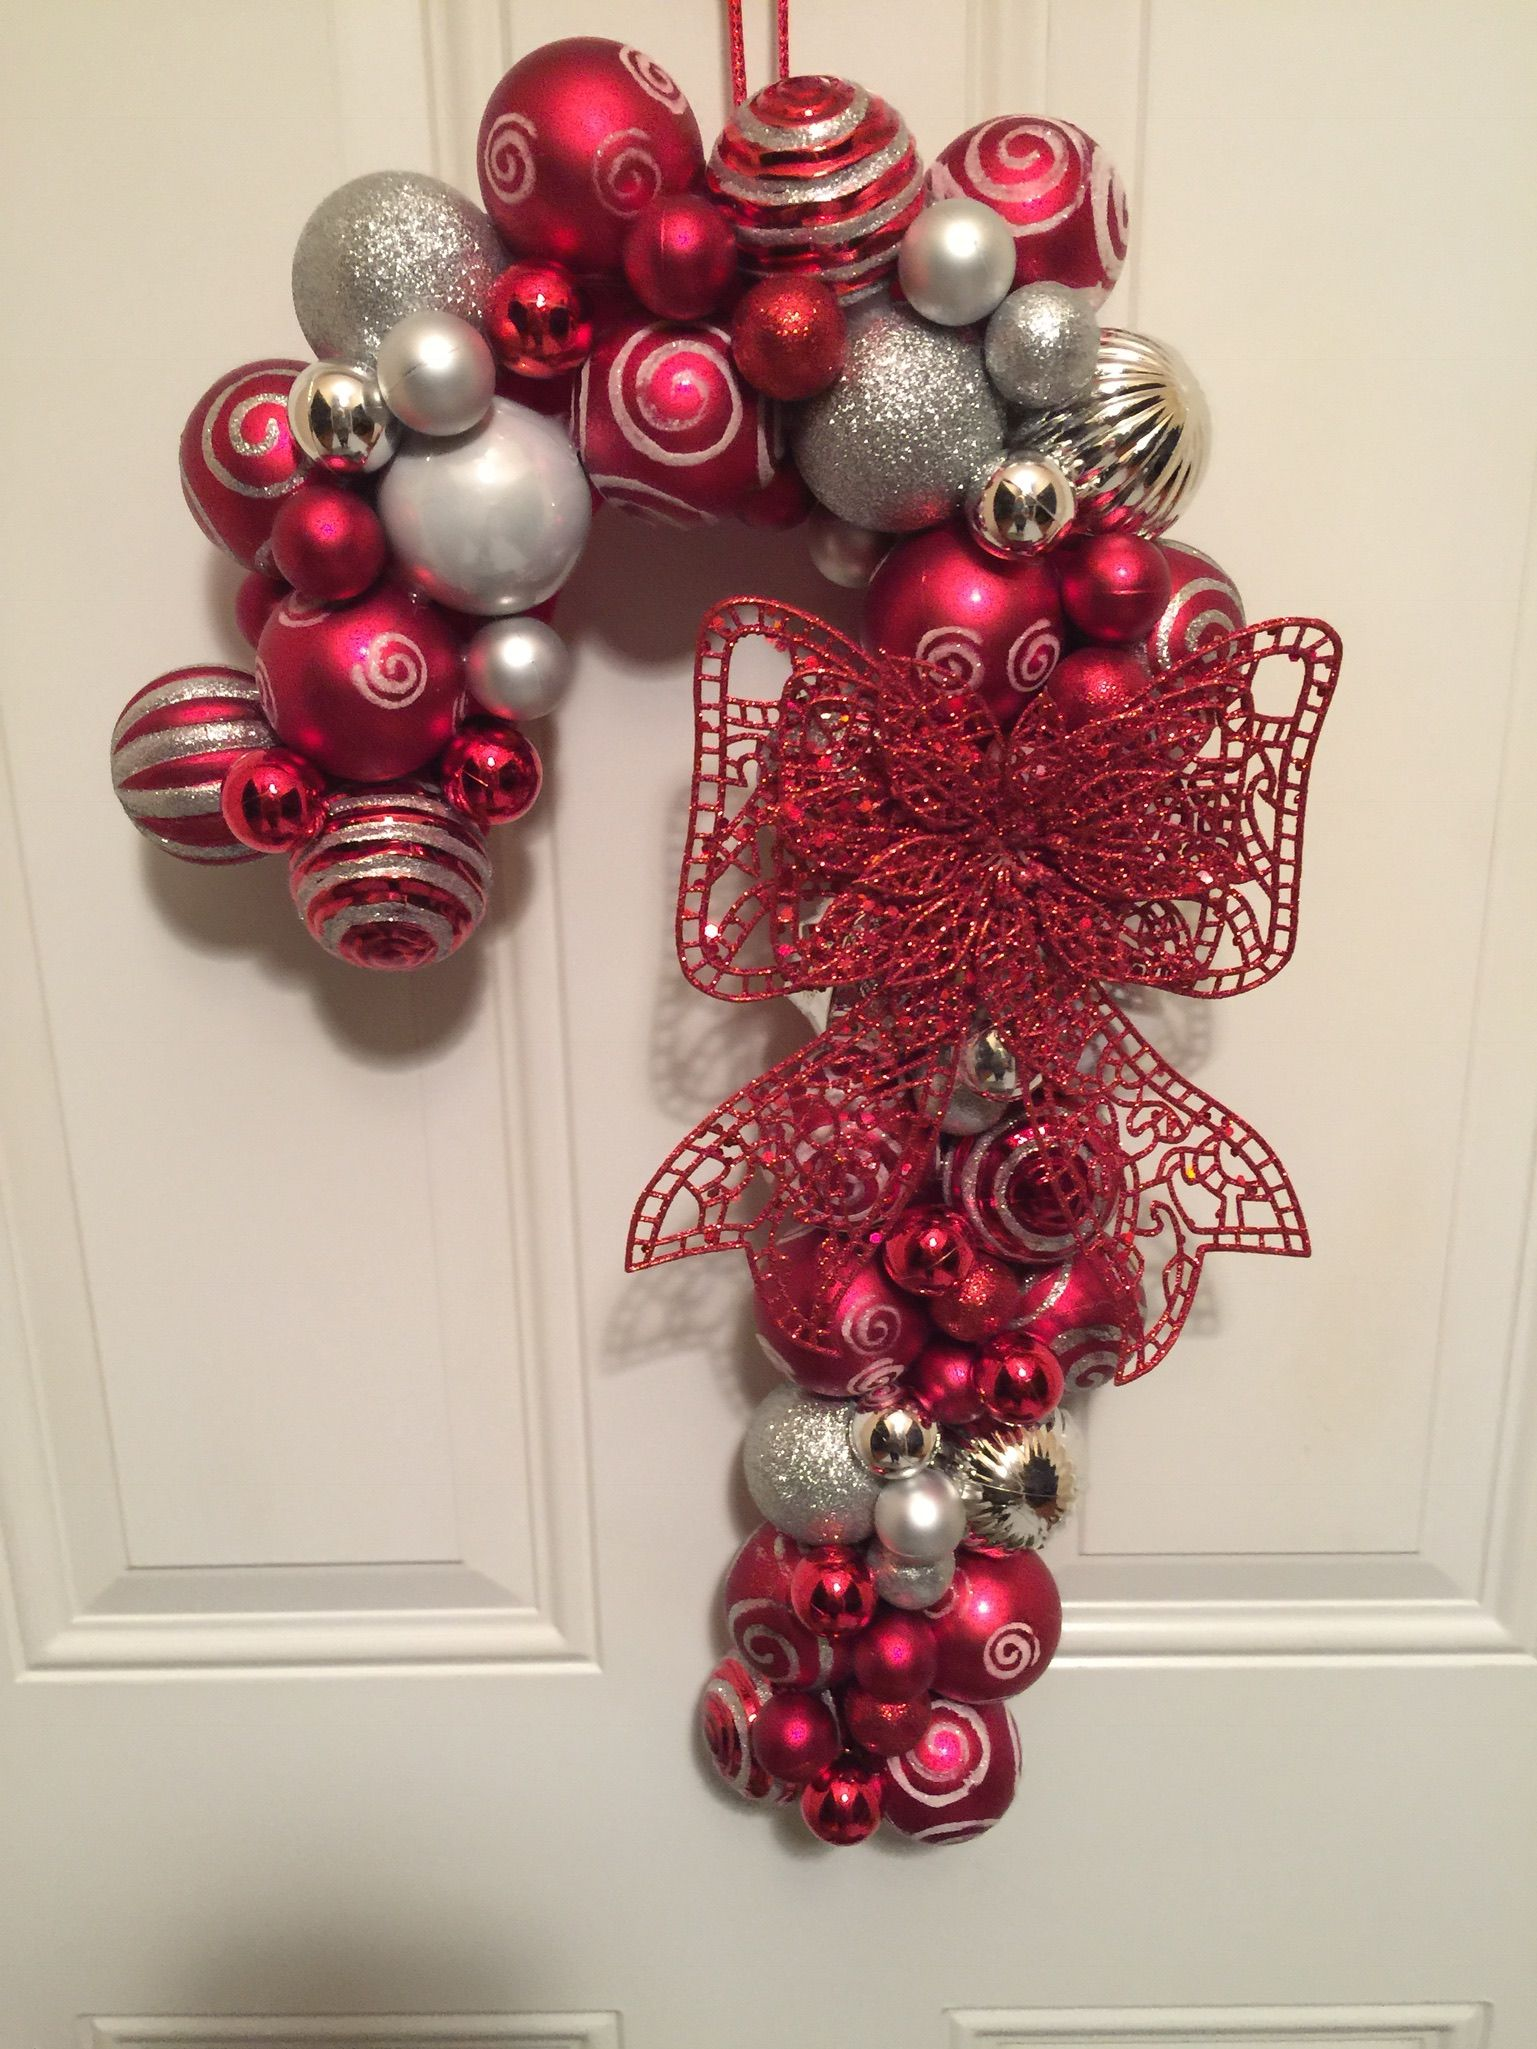 Candy Cane Ornament Wreath All From Dollar Tree Ornament Wreath